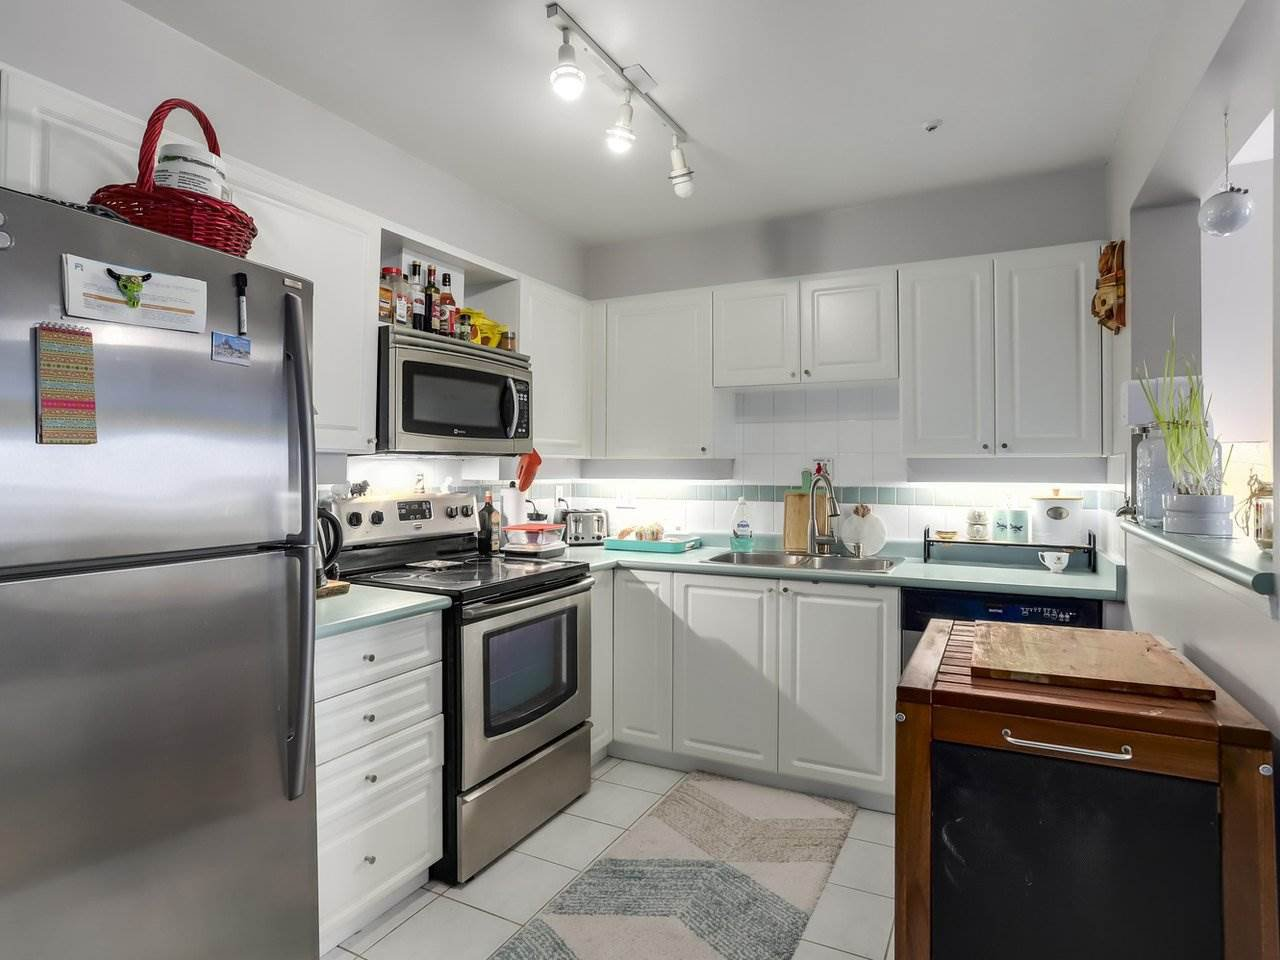 Photo 9: Photos: 107 295 SCHOOLHOUSE Street in Coquitlam: Maillardville Condo for sale : MLS®# R2286753